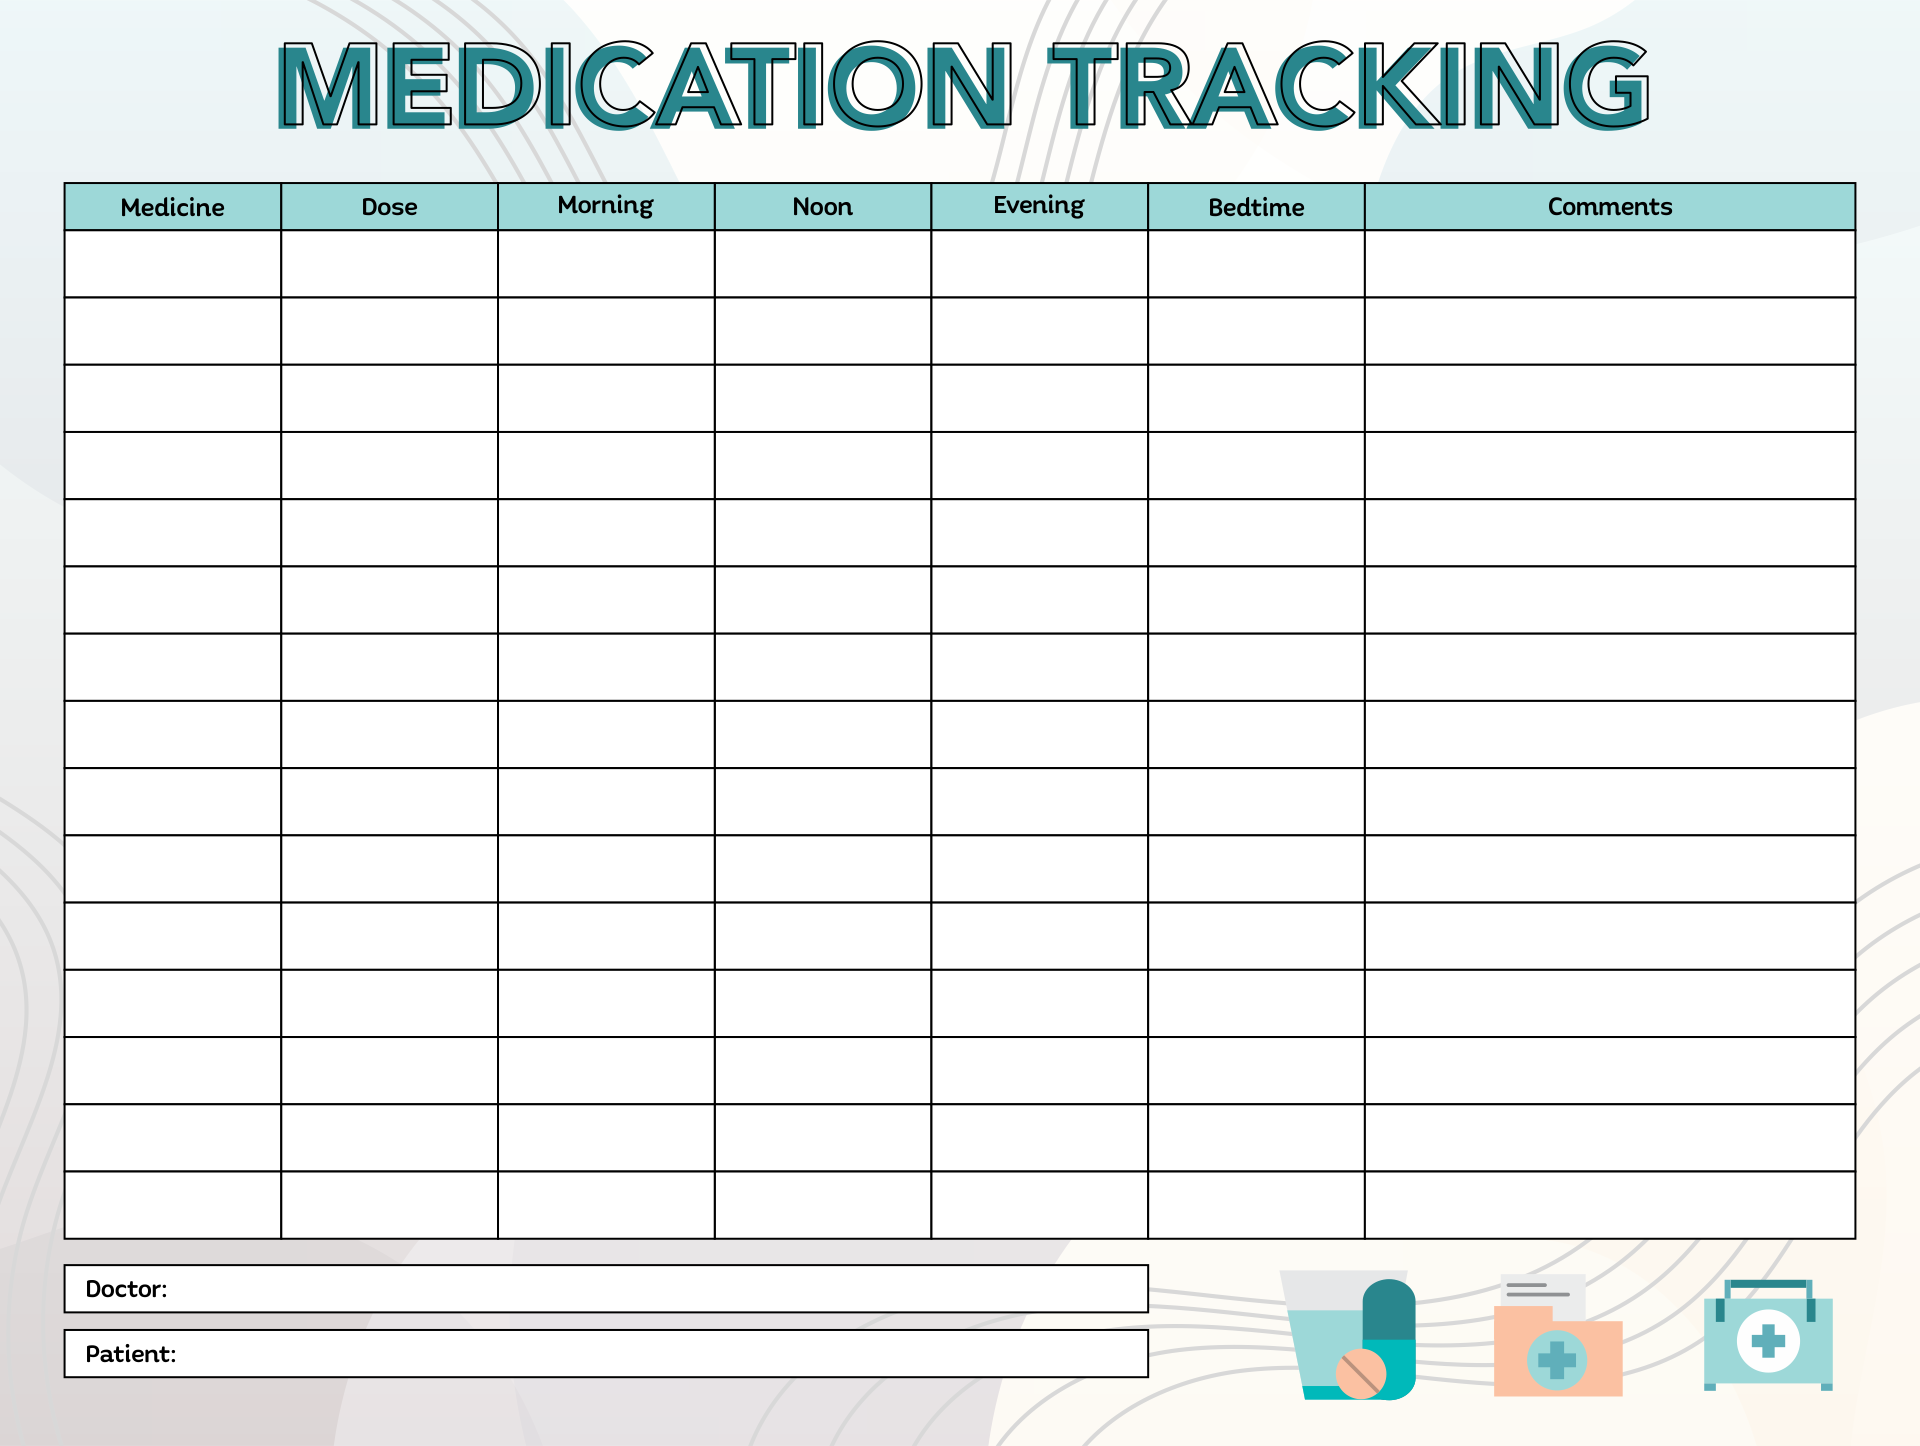 ... Record, Blank Monthly Medication Administration Record and Medication